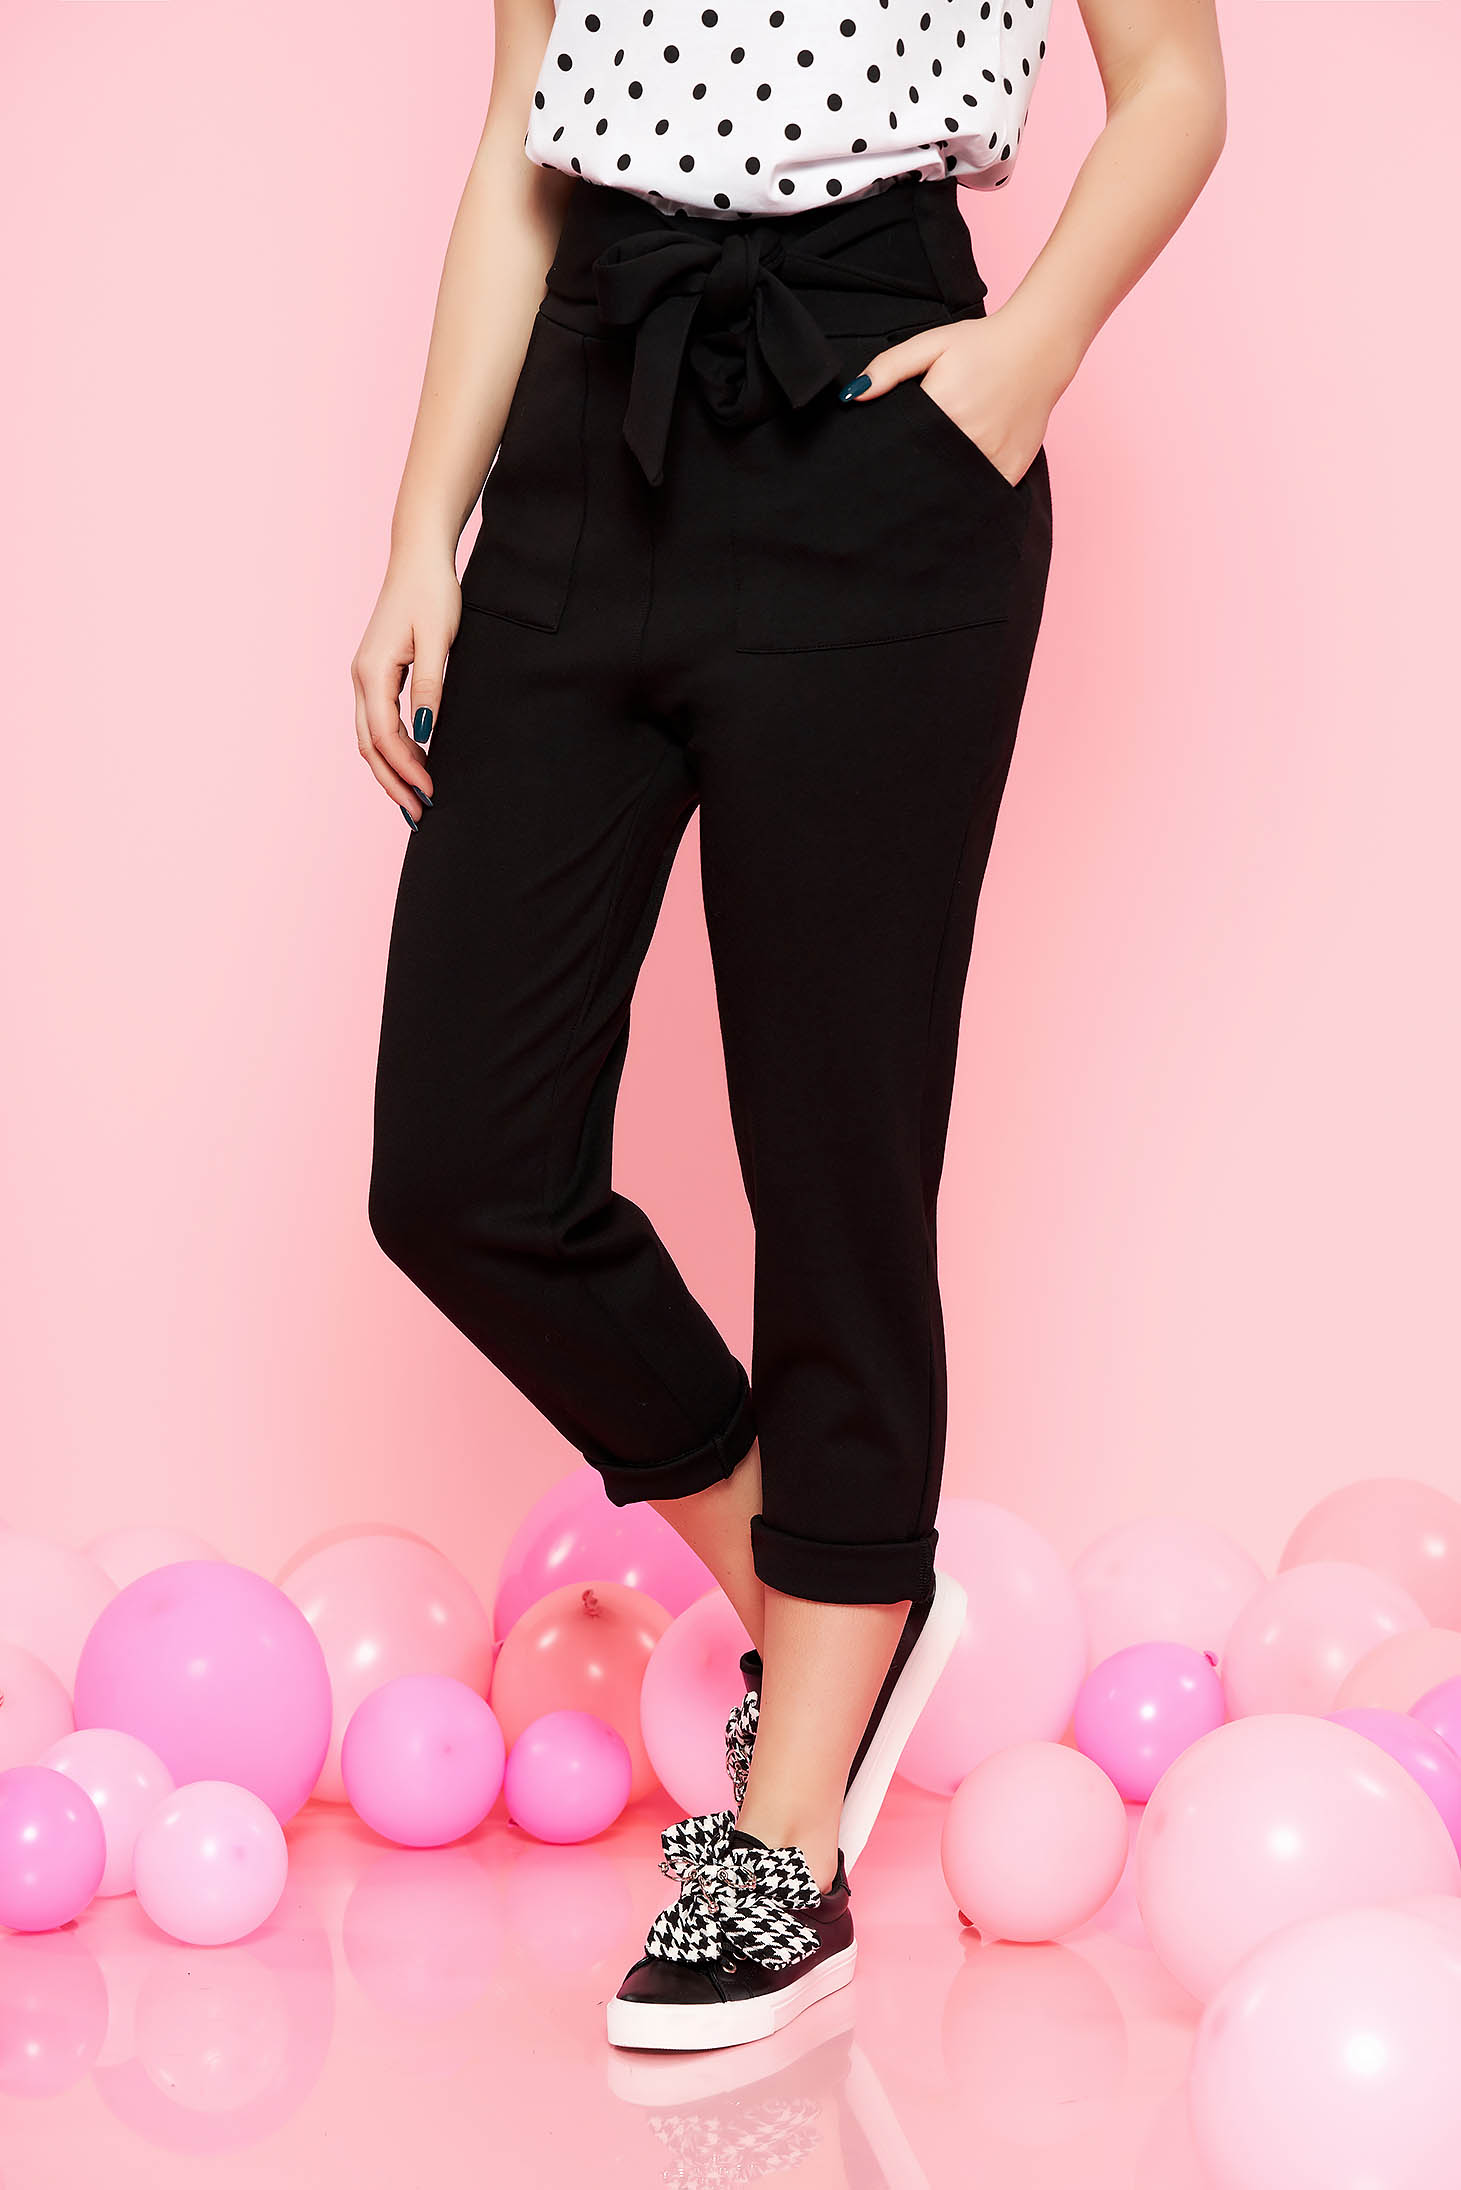 Top Secret black casual high waisted trousers slightly elastic fabric accessorized with tied waistband with pockets